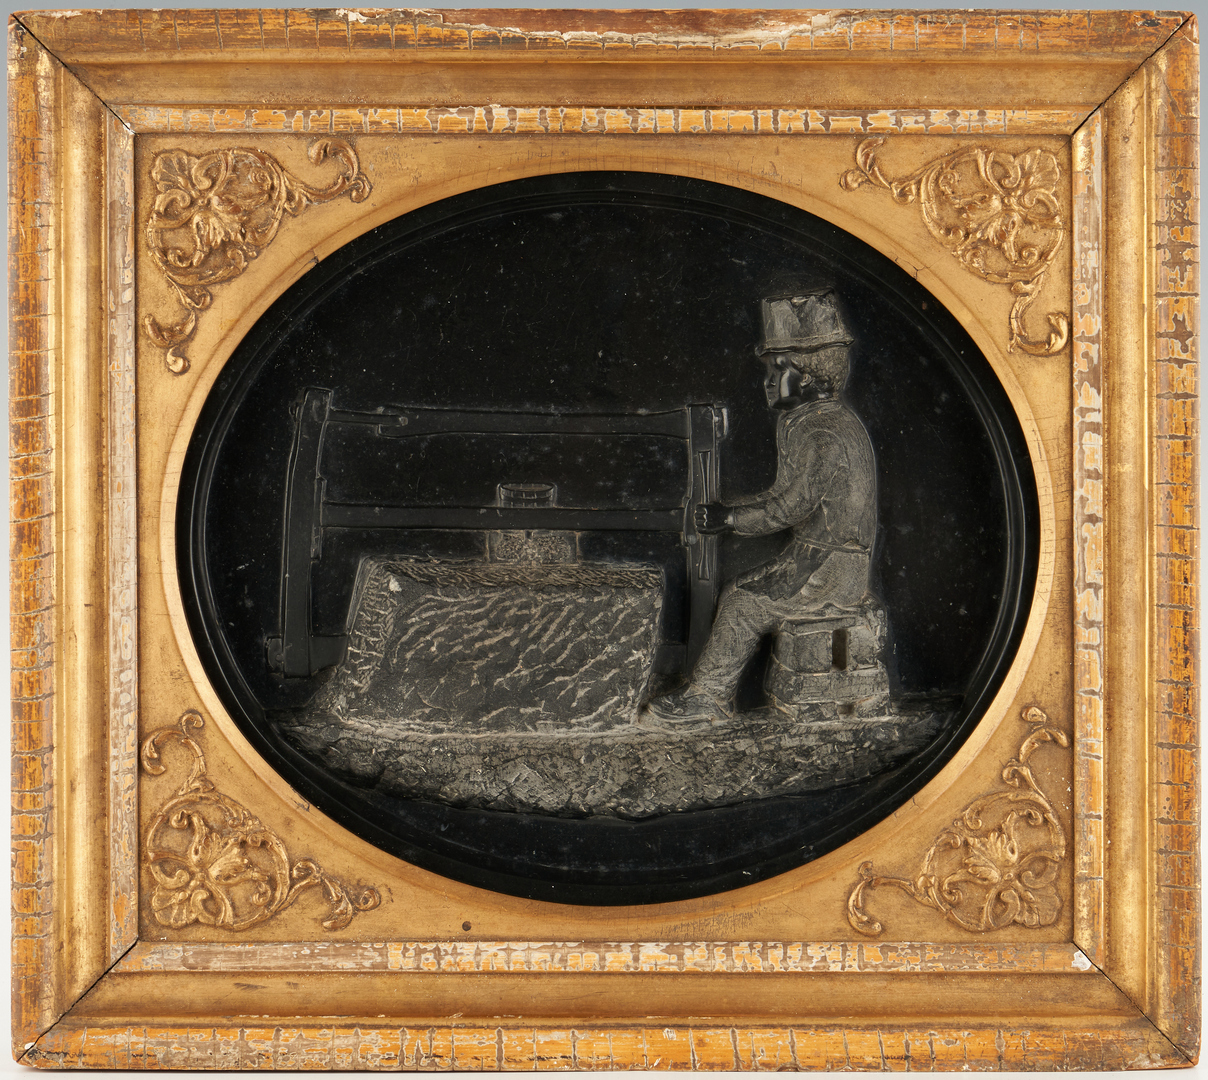 Lot 133: Baltimore Framed Plaque or Trade Sign for Stonecutter